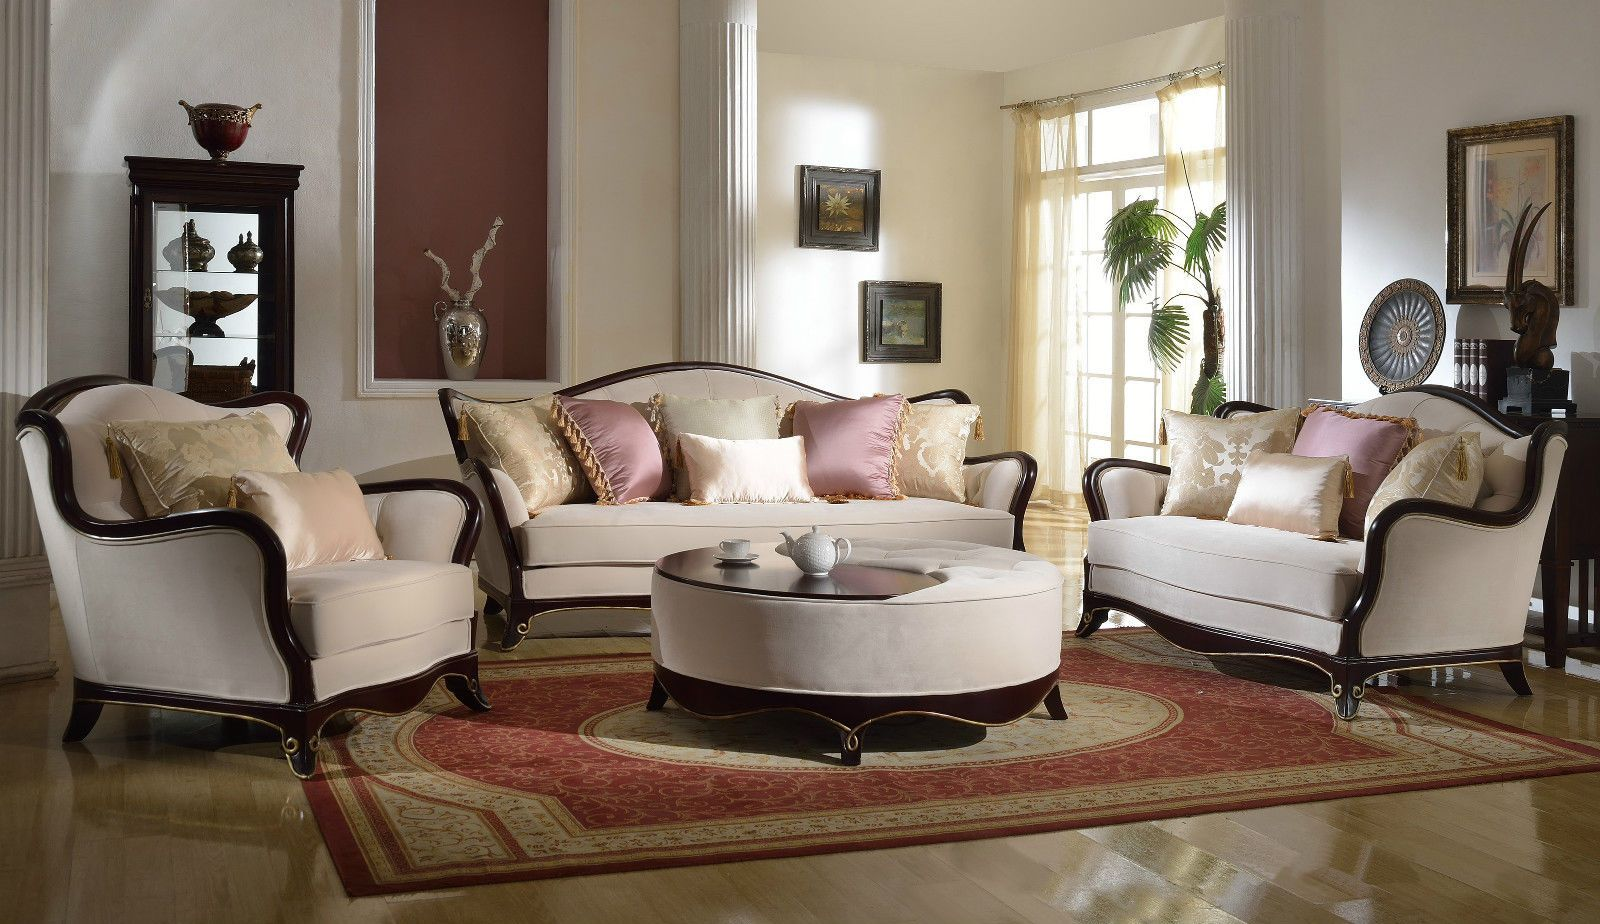 French Provincial Formal Living Room Furniture Set Sofa Loveseat Exposed Wood Formal Living Room Furniture Living Room Sets Furniture French Living Room Furniture